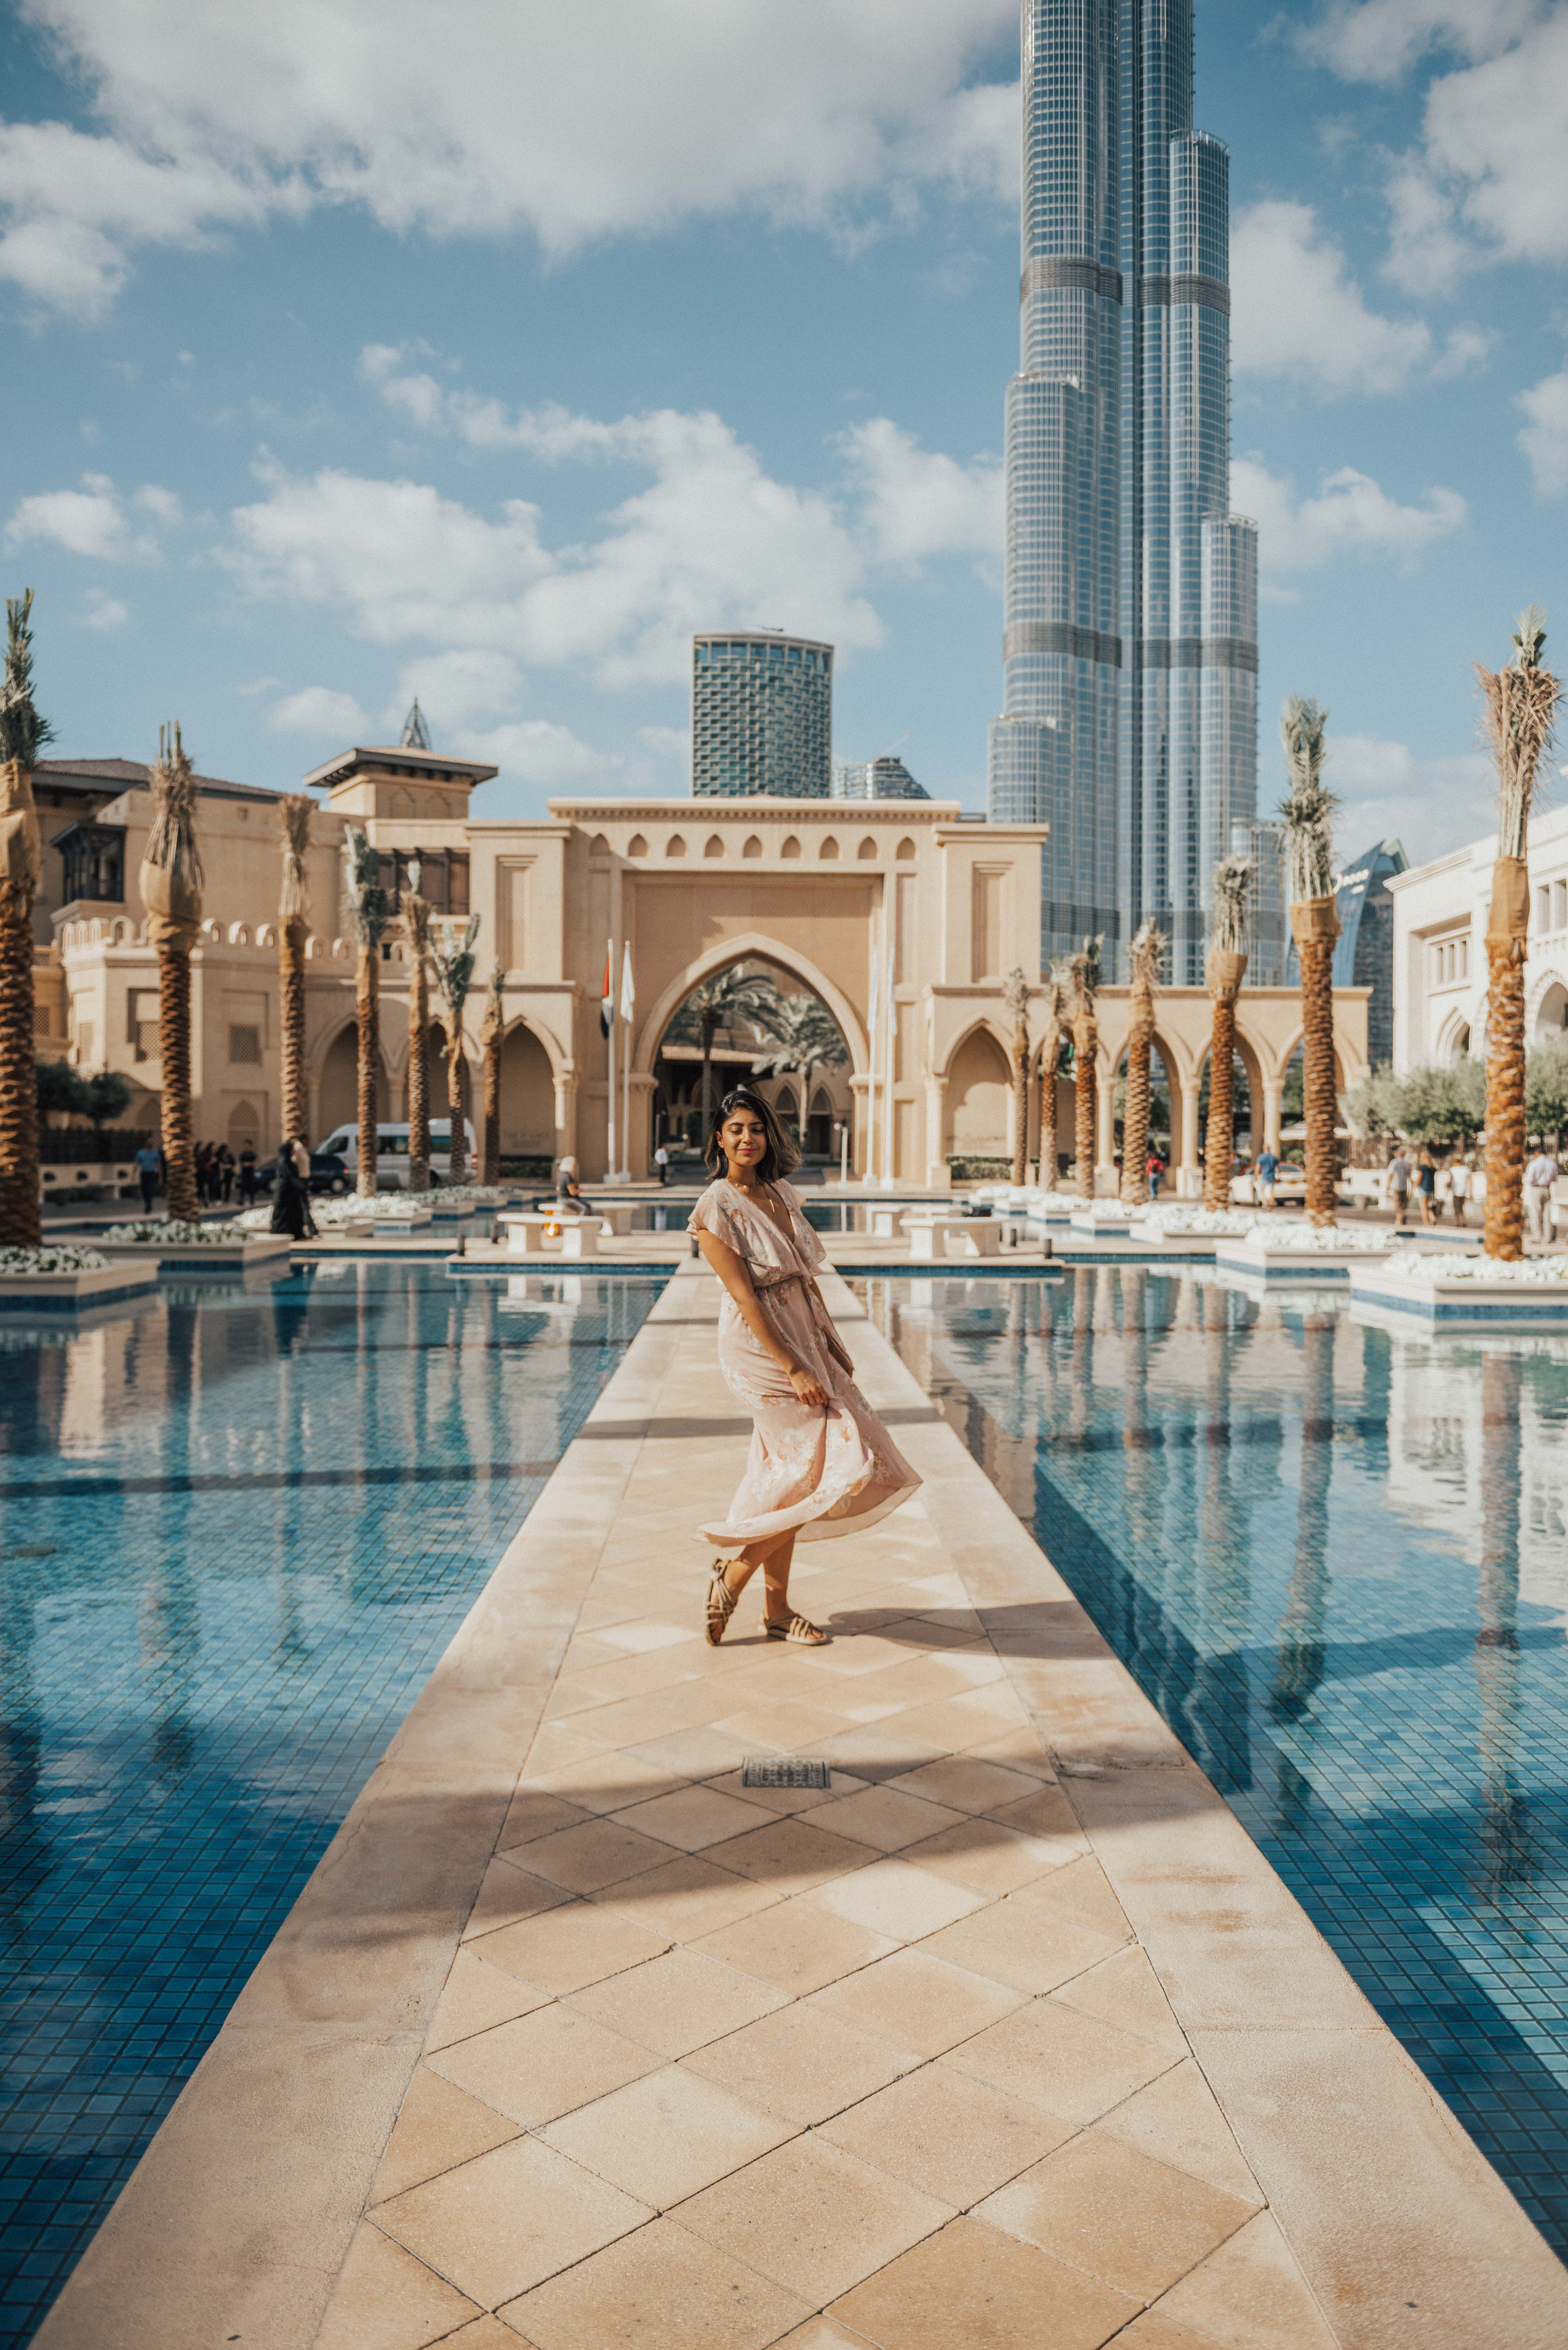 Dubai Travel | Planning a trip to the UAE? Make sure you read this guide, which is full of Dubai travel tips, including things to do in Dubai, Dubai architecture, best restaurants in Dubai, Dubai outfits, and so much more |#dubaitravel #dubaitraveltips